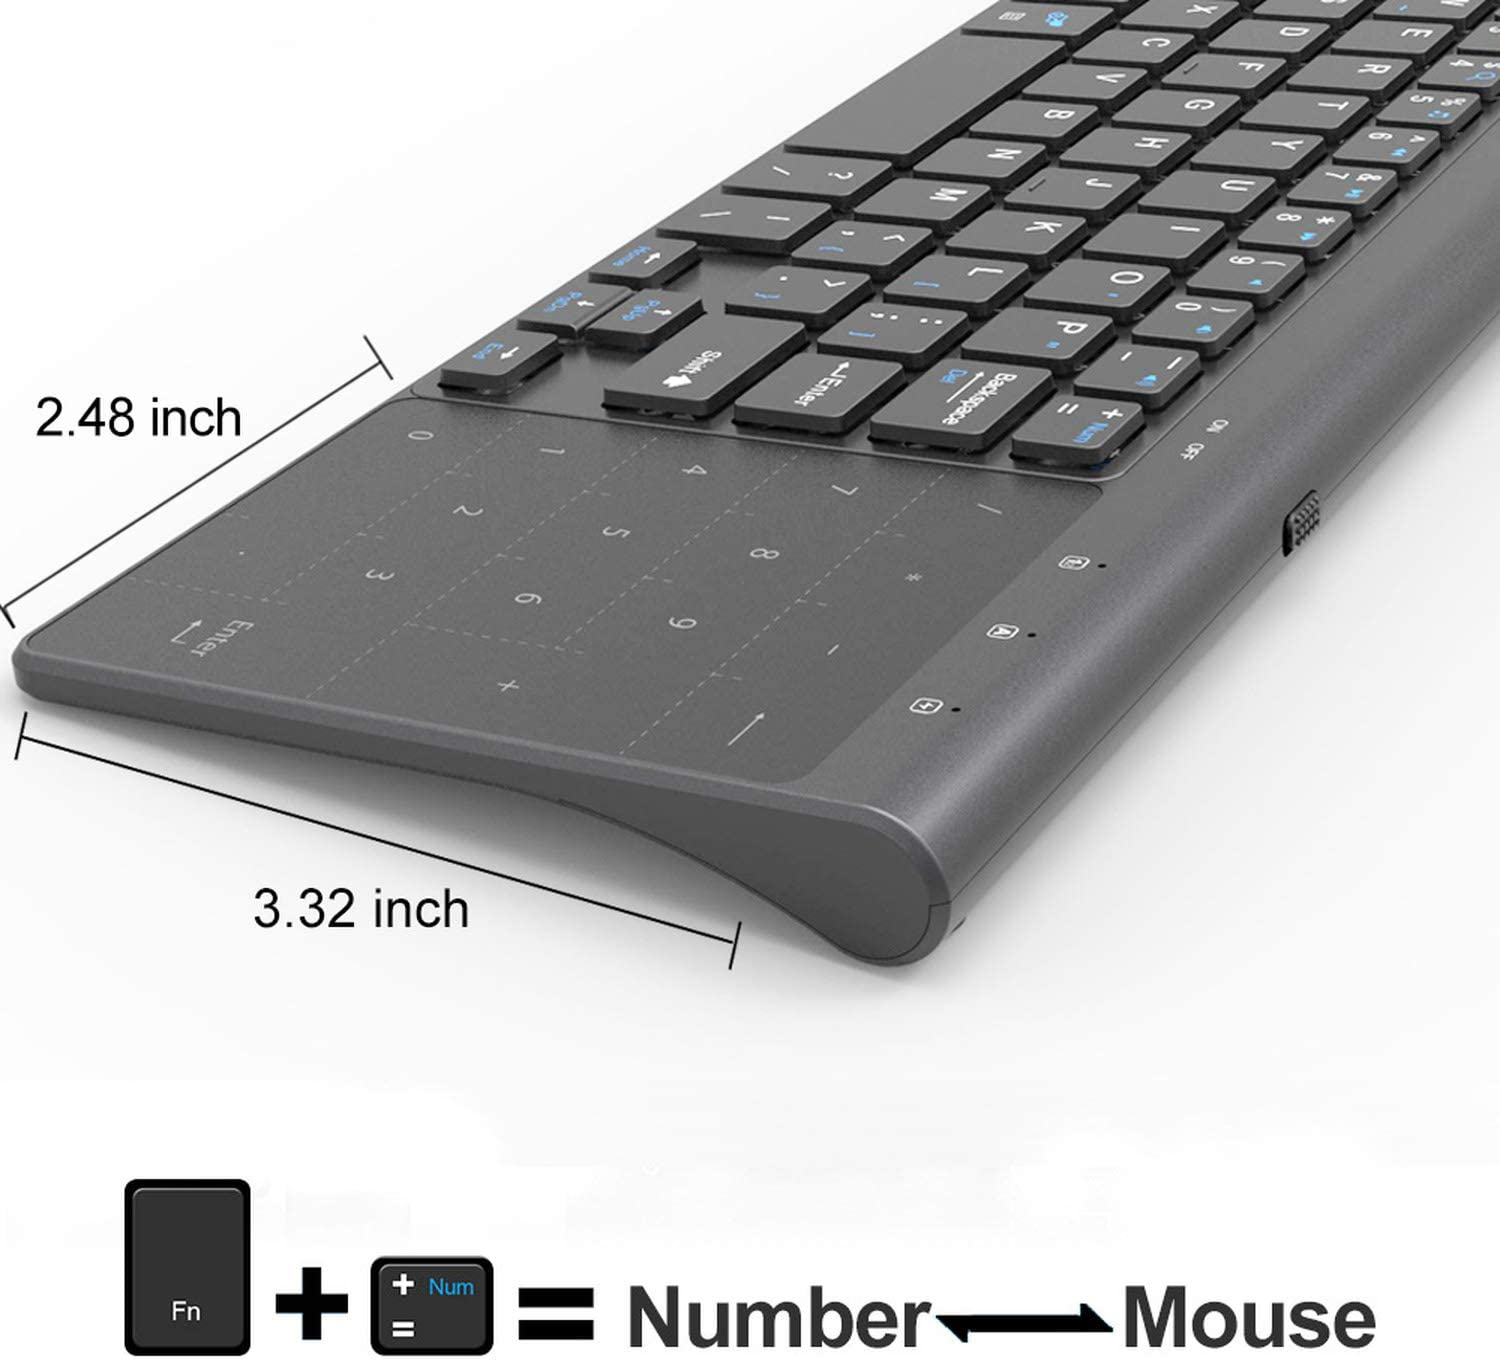 Meidly 2.4Ghz USB Wireless Mini Keyboard with Number Touchpad Numeric Keypad for Android Windows Tablet,Desktop,Laptop,PC